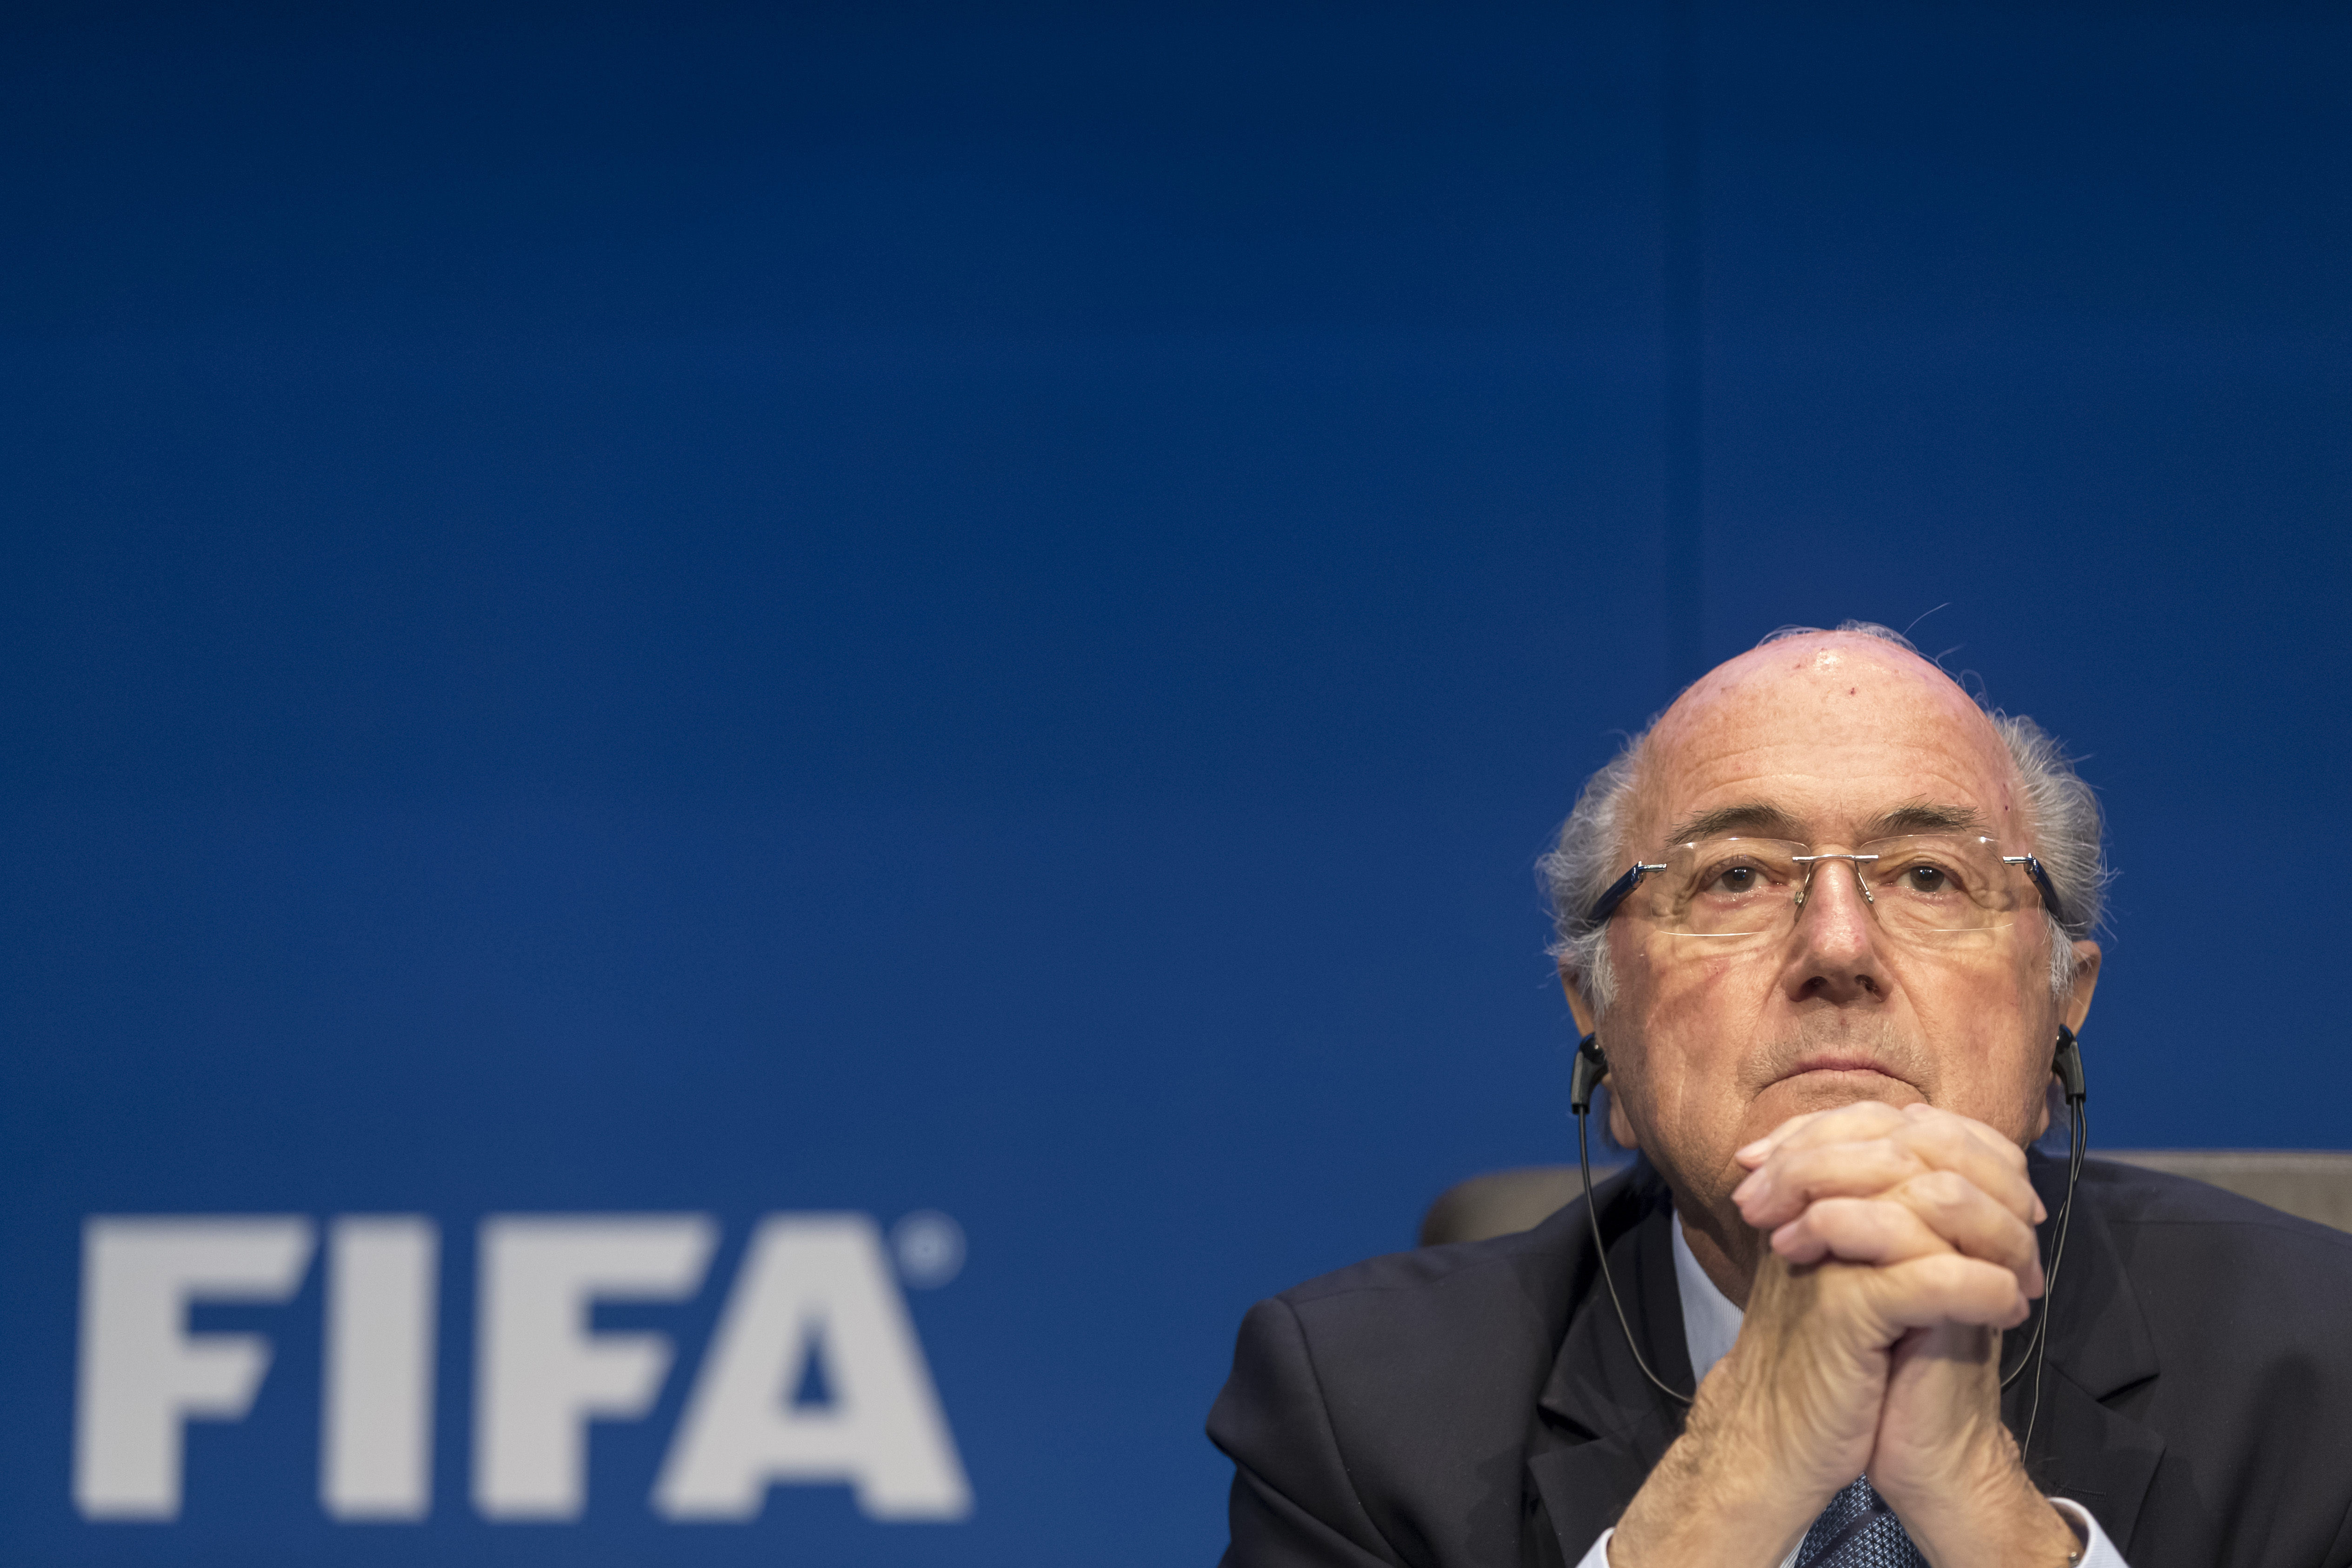 FIFA President Joseph S. Blatter talks to the press during the FIFA Post Congress Week Press Conference at the Home of FIFA on May 30, 2015 in Zurich.